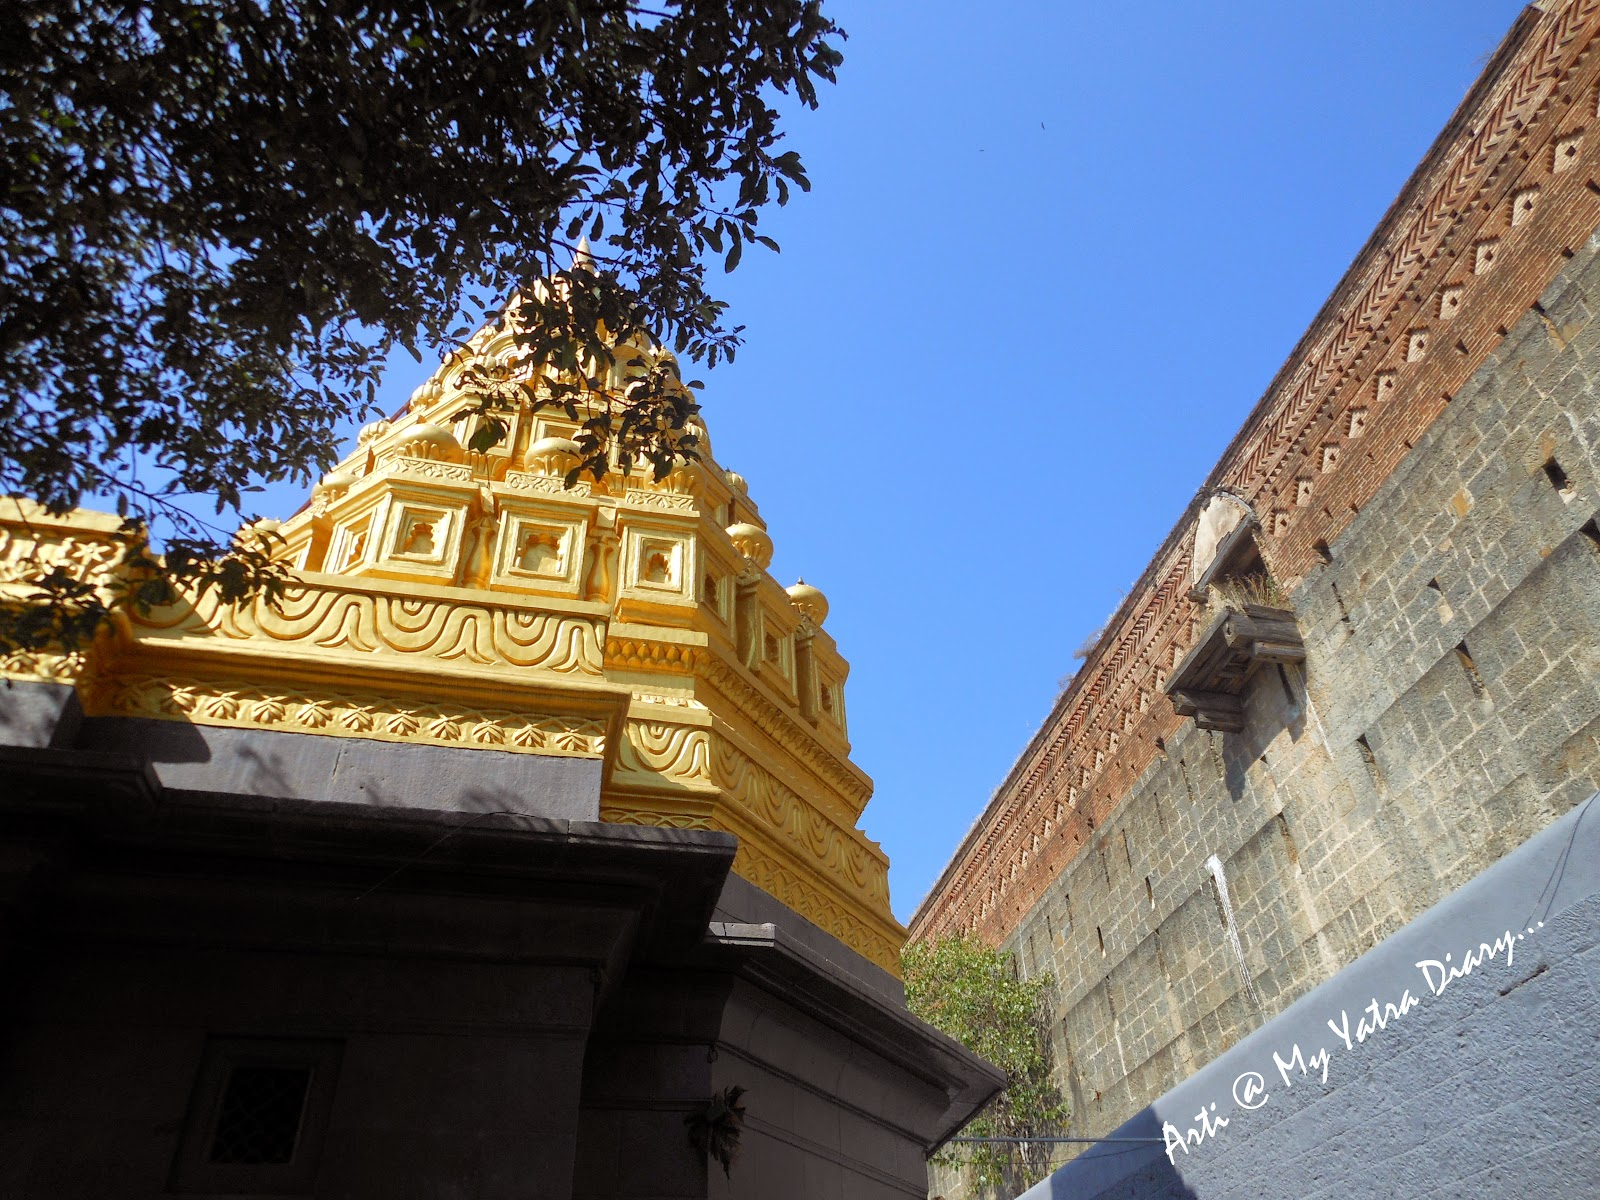 The gold plated spire of the Bhairavnath temple, Saswad, Pune, Maharashtra